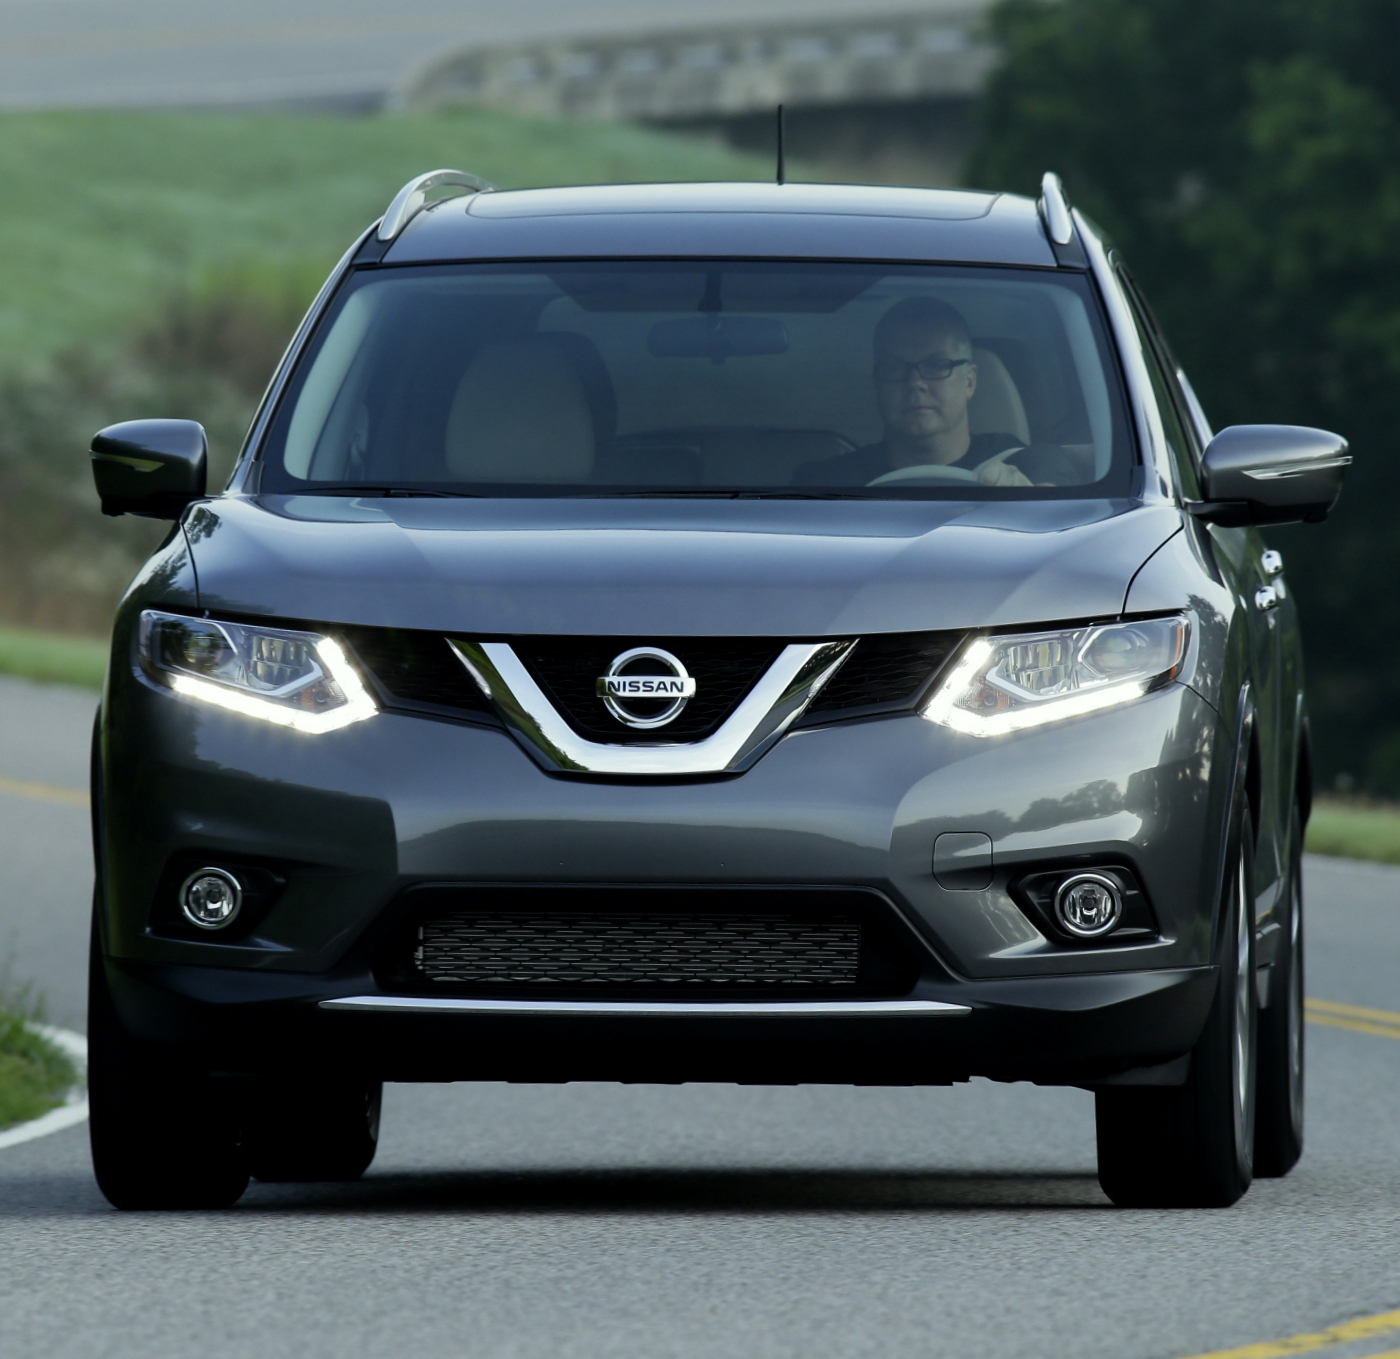 quick look all new 2014 nissan rogue w video. Black Bedroom Furniture Sets. Home Design Ideas